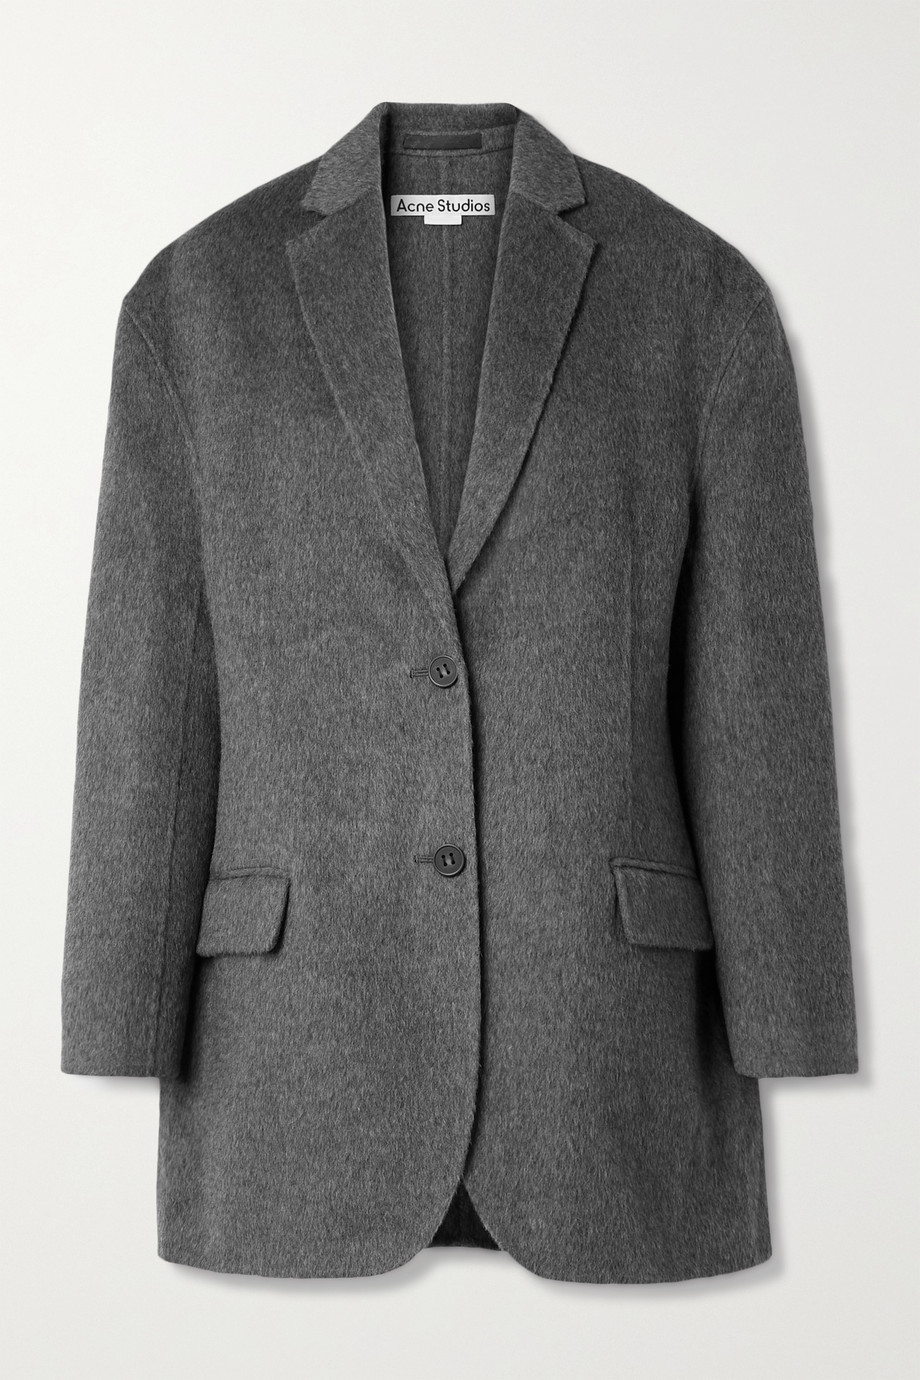 Acne Studios Oversized mélange brushed wool and alpaca-blend blazer